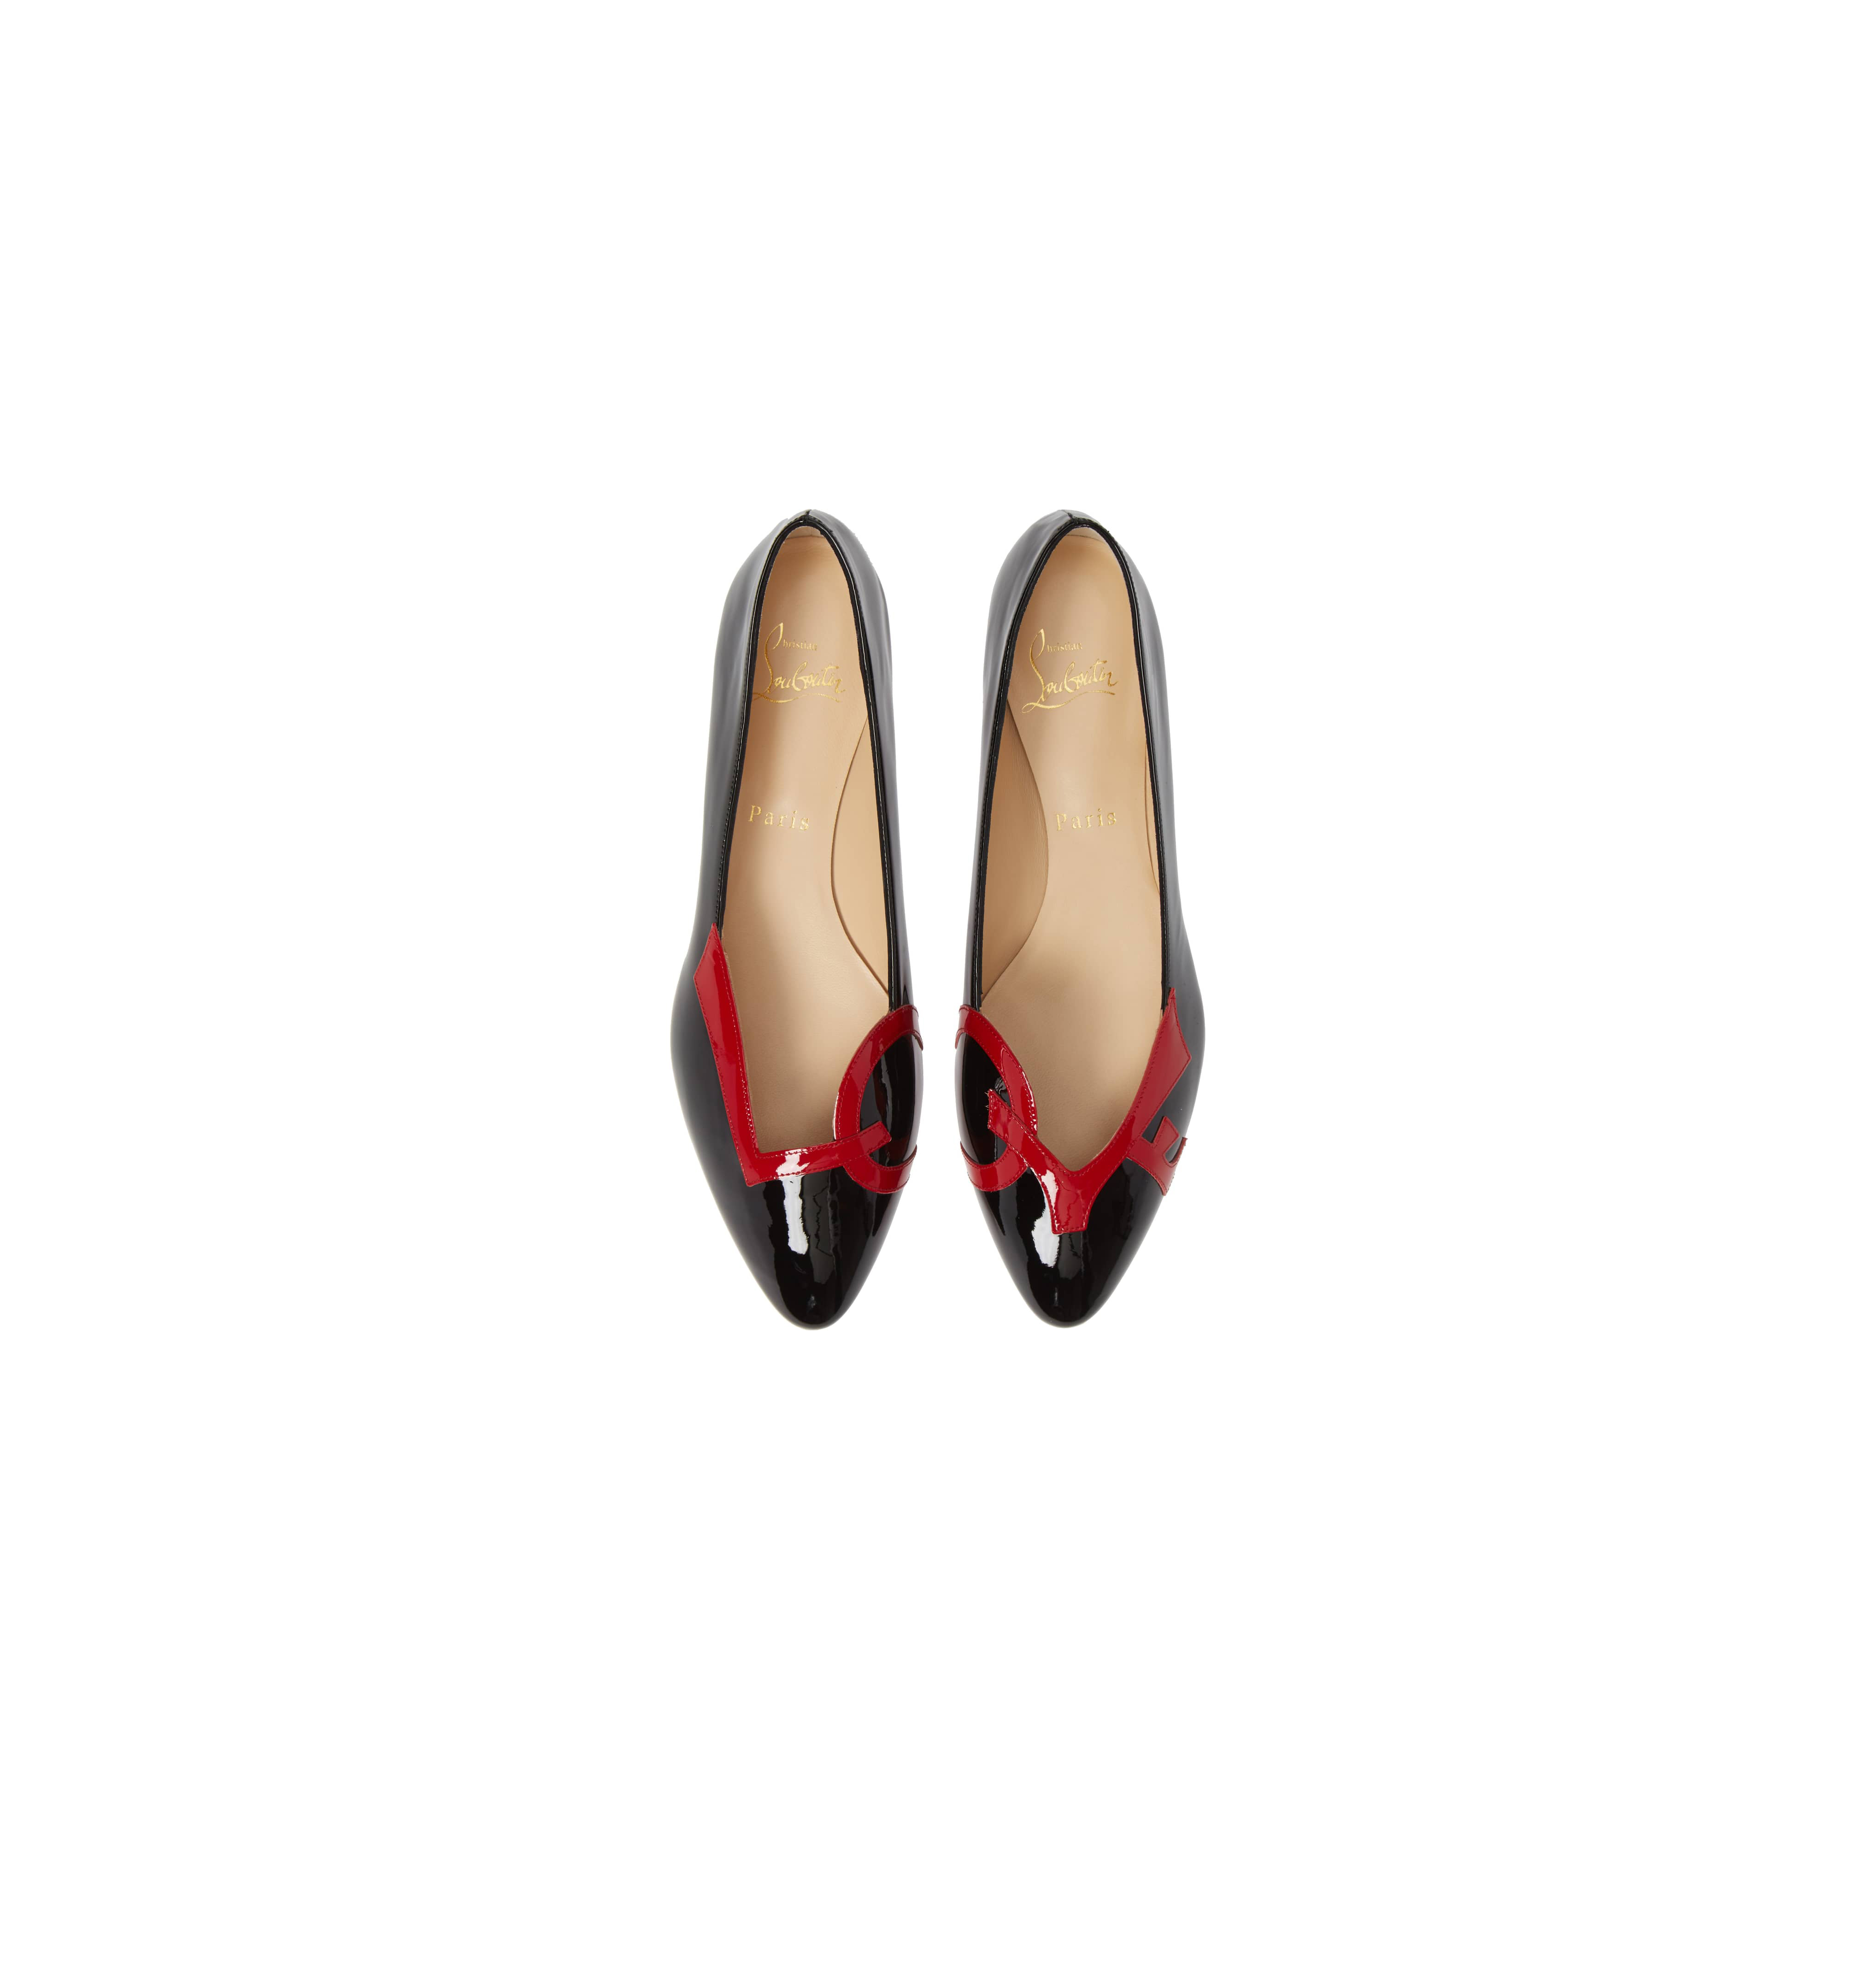 b2020435c09 These Christian Louboutin Ballet Flats Have a Romantic Message